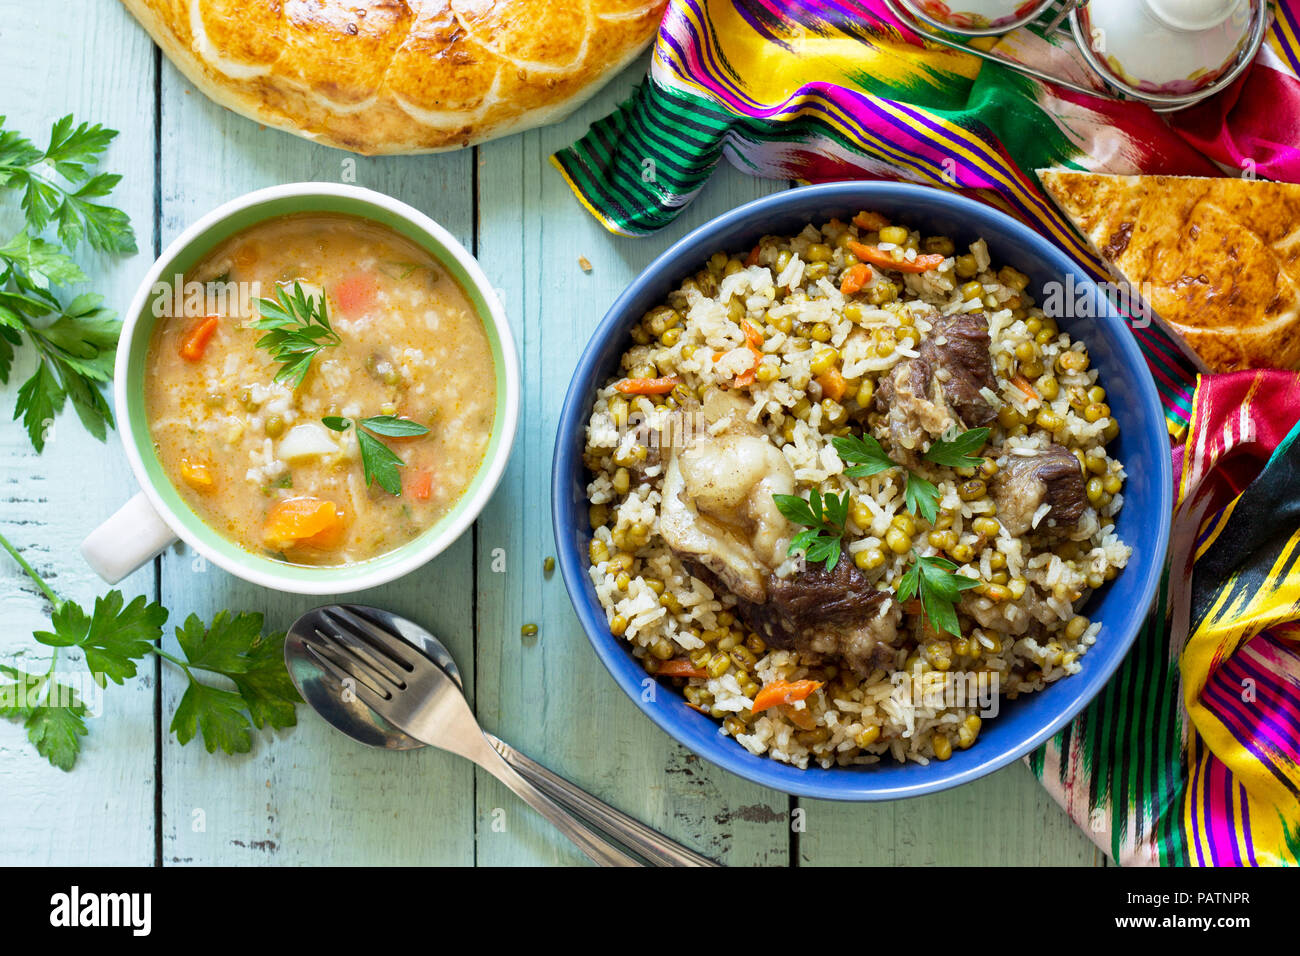 Eastern cuisine. Homemade Soup with bean mung and rice with bean mung and beef. Top view flat lay background. - Stock Image